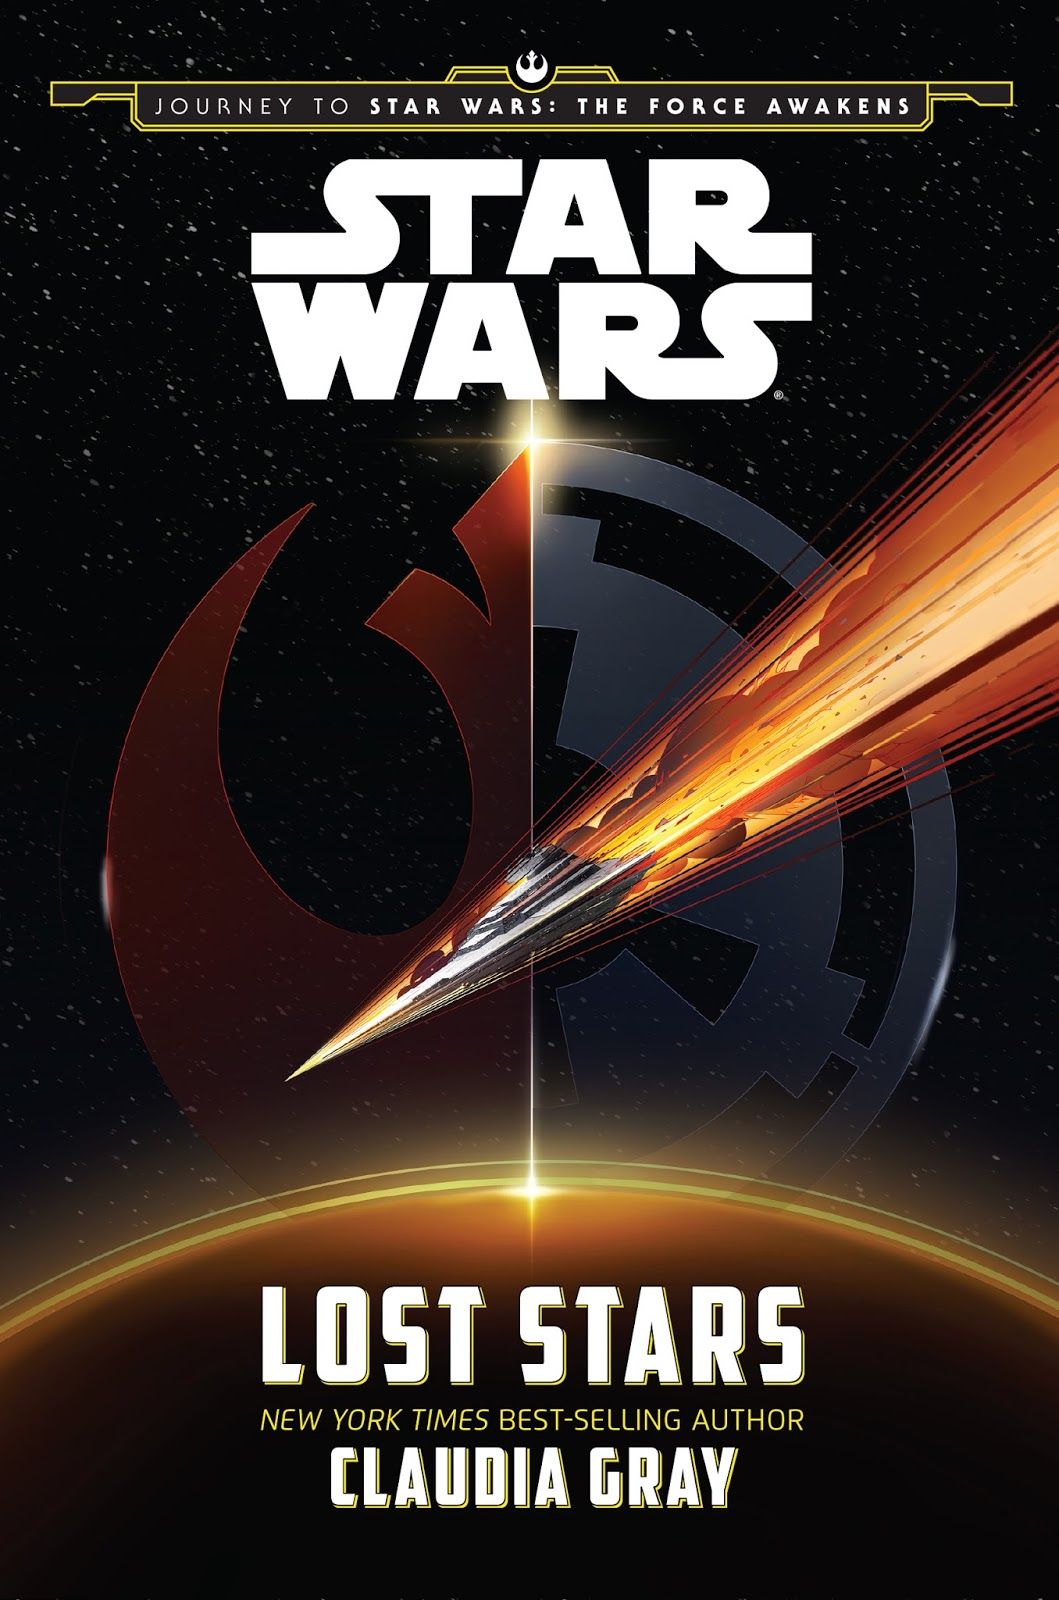 Lost Libro How To Arsenio Lupín Reseña Libro Star Wars The Lost Stars